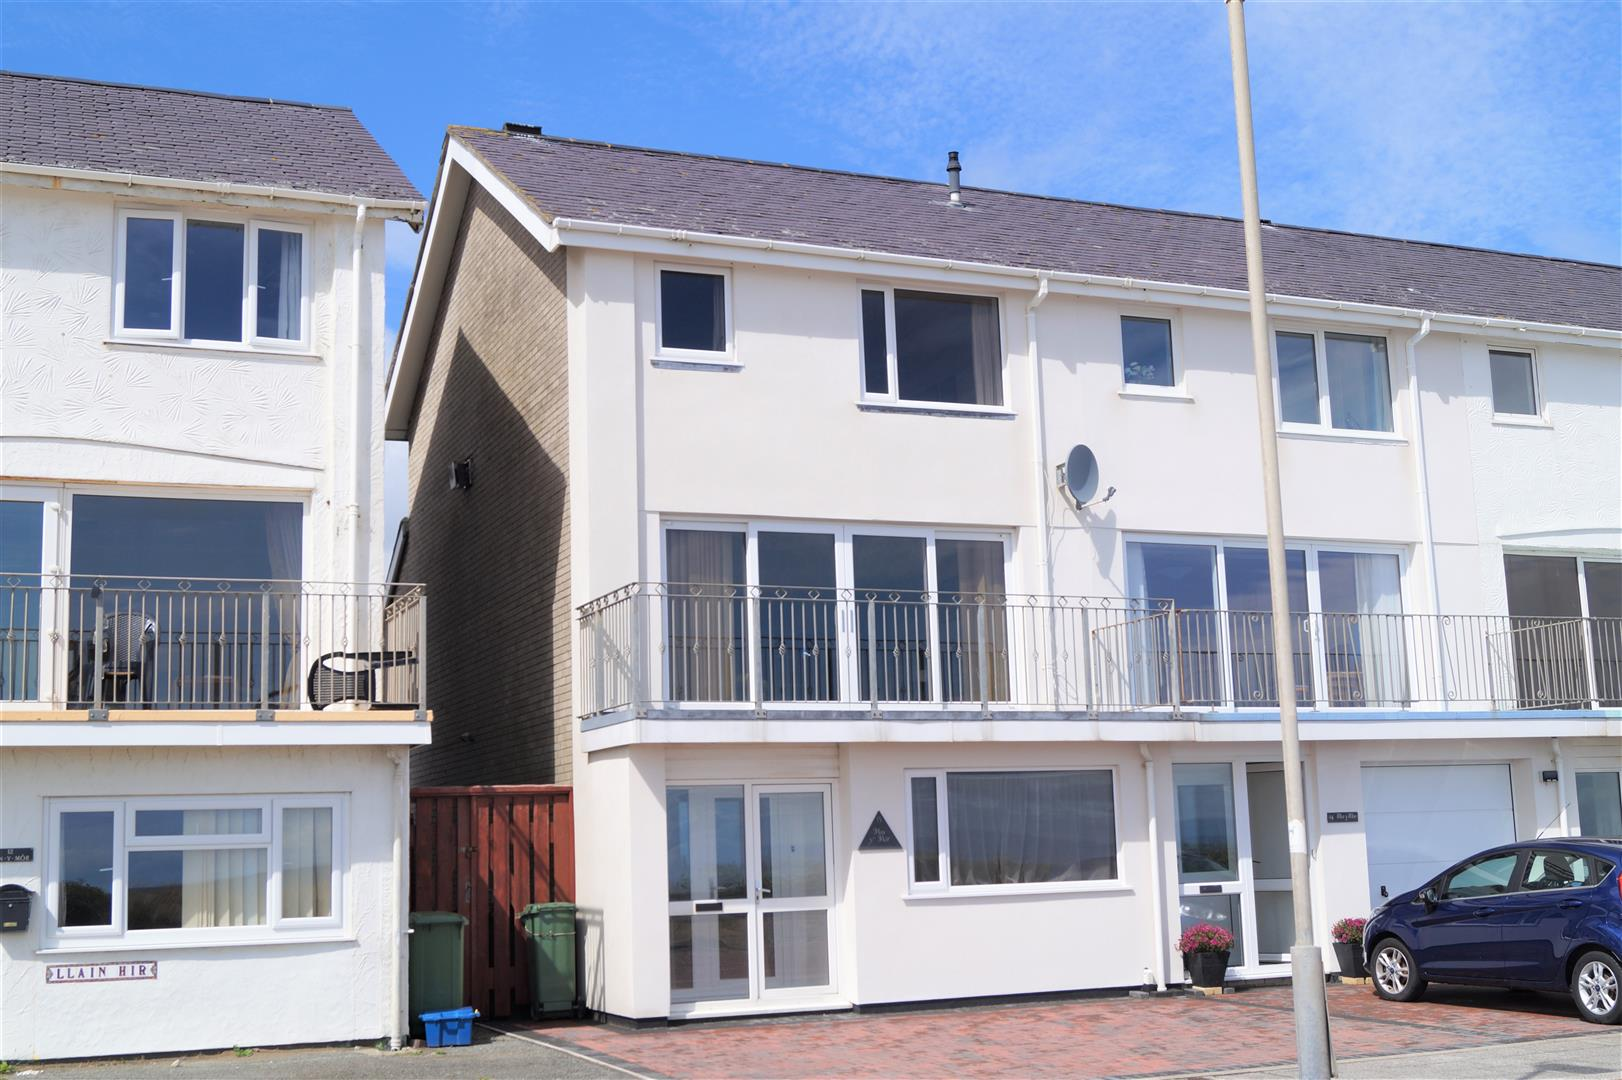 Victoria Parade, Pwllheli - £269,000/Realistic offers considered